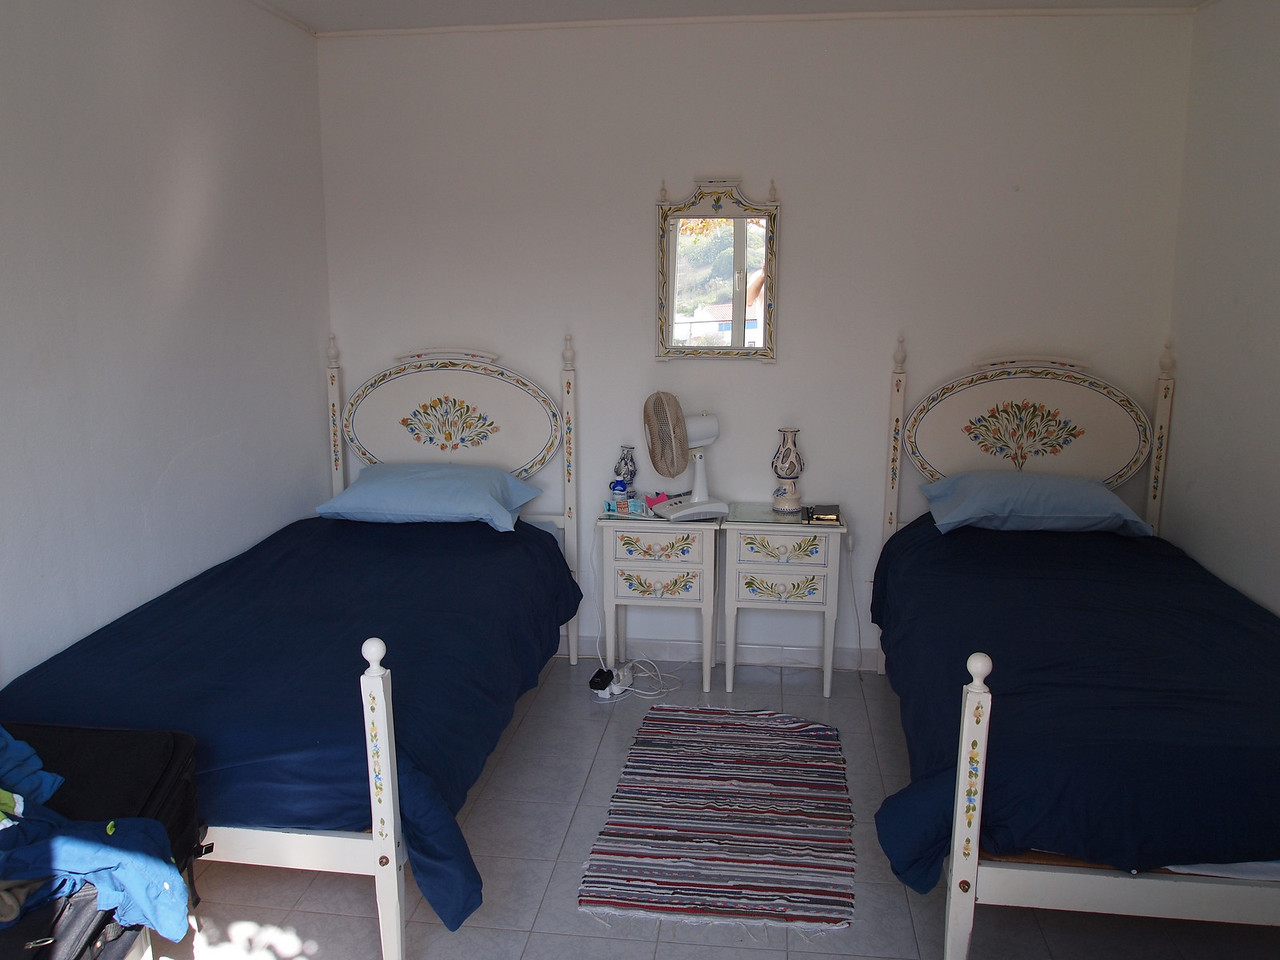 Our bed and breakfast in Salema, Portugal